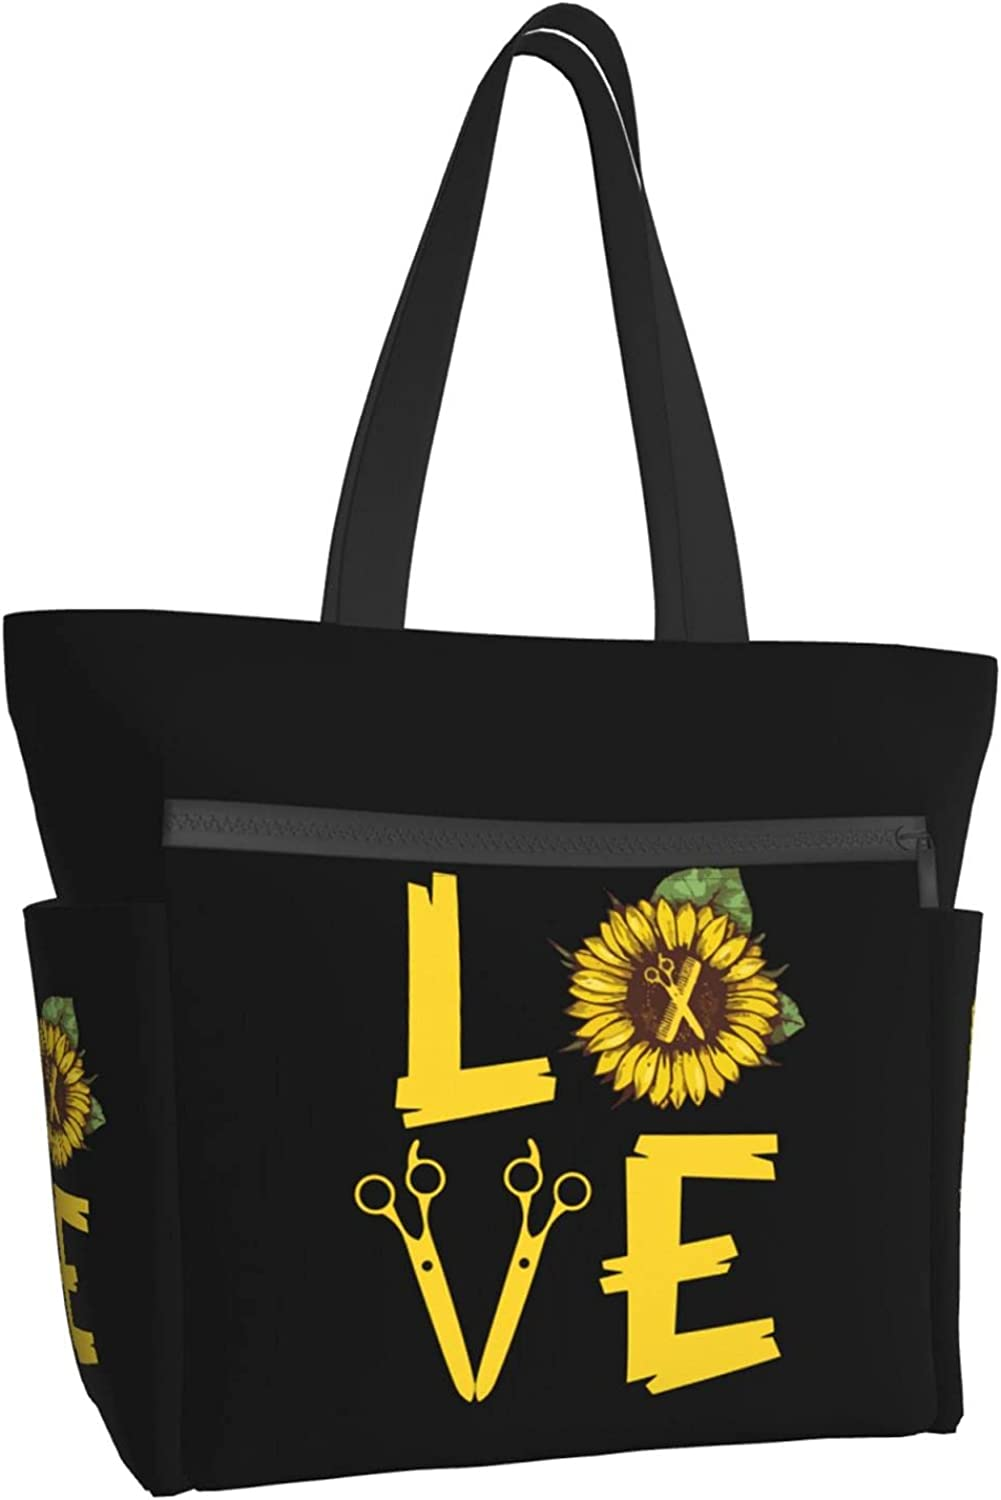 Women Tote Bag Aesthetic Selling Hairstylist Inventory cleanup selling sale Sunflower Love Han Shoulder